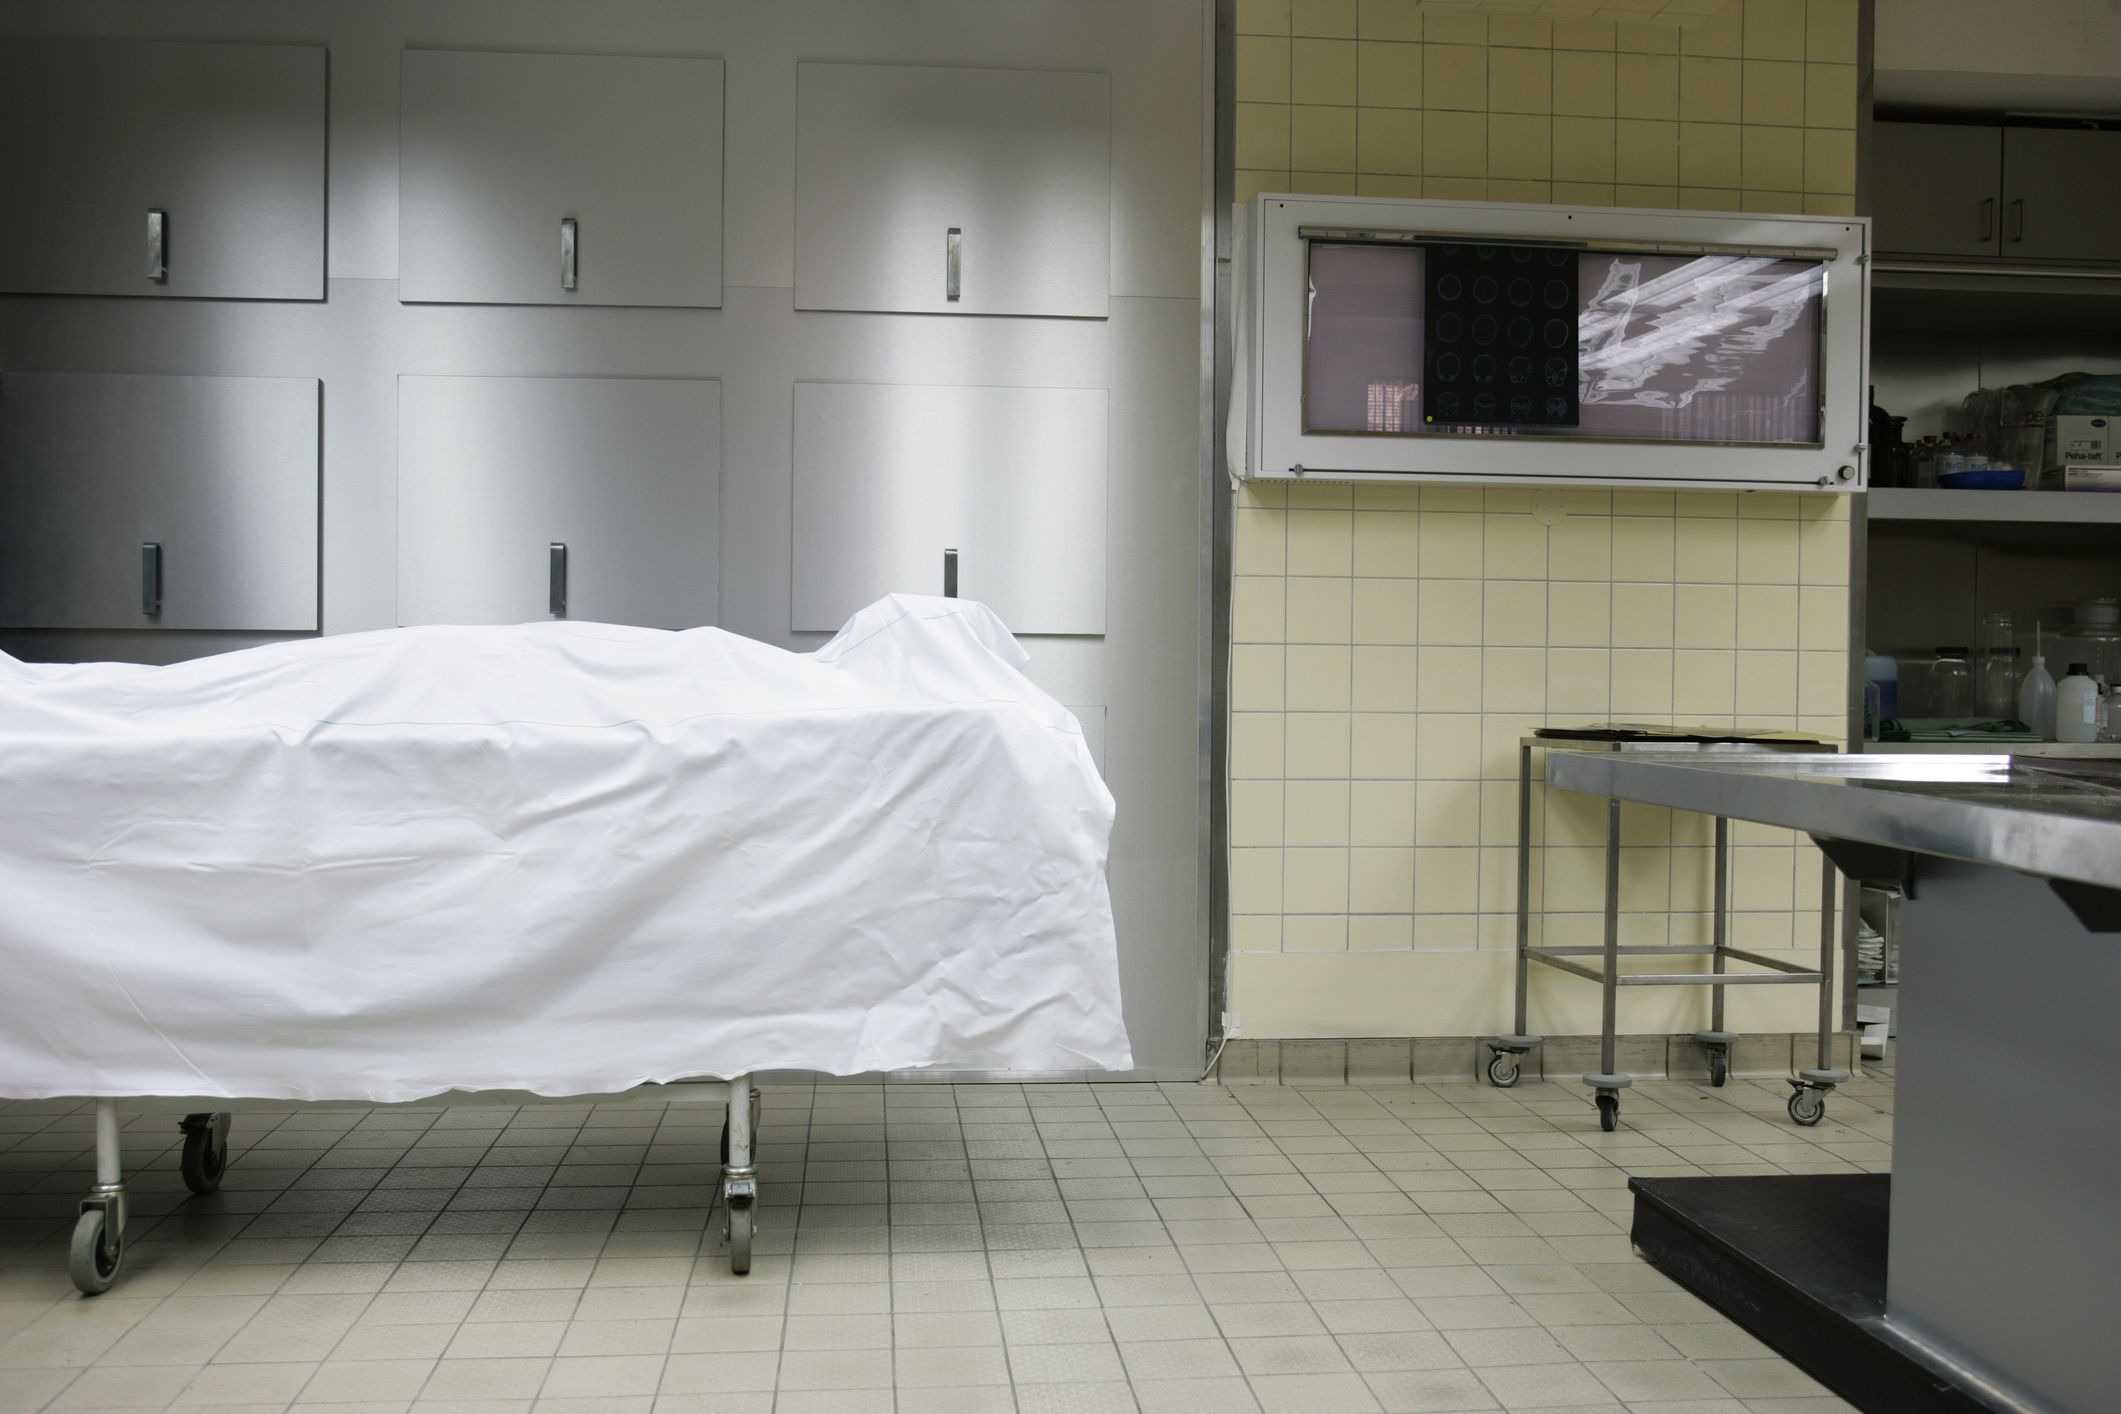 A 'dead' man shocked doctors after waking up during his autopsy